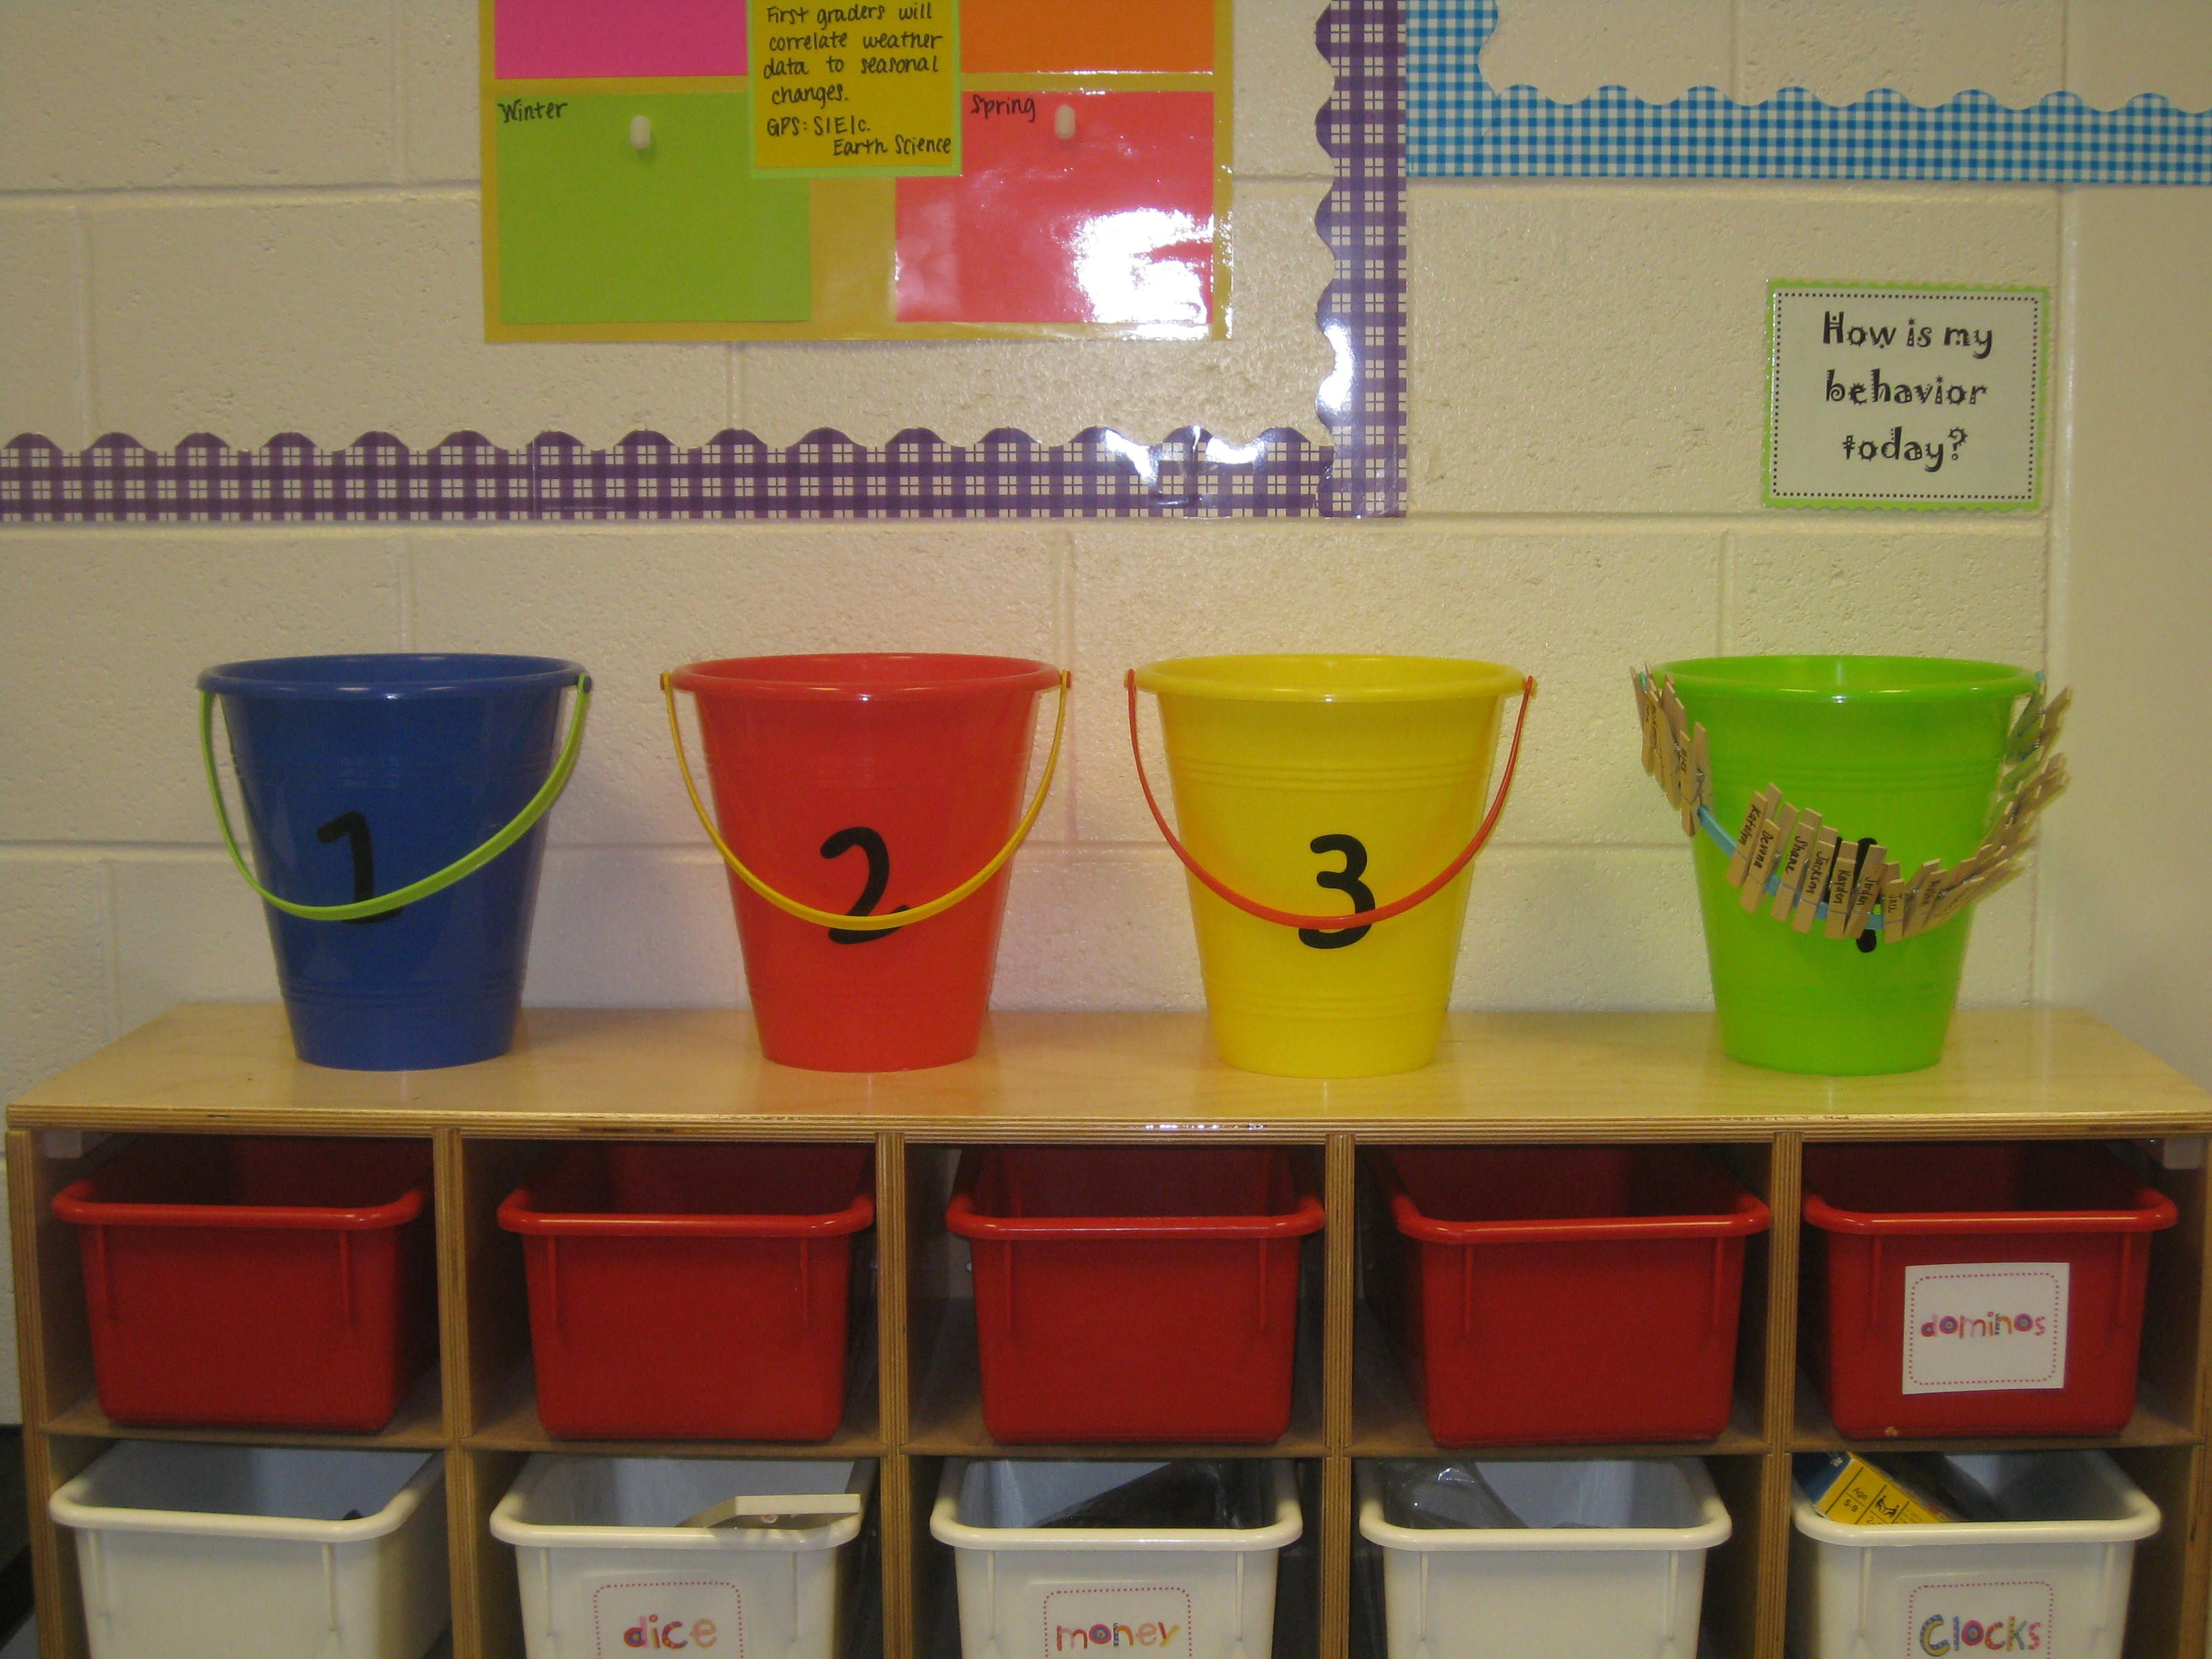 Classroom Design That Works Every Time ~ Turn it into positive classroom by making these the group